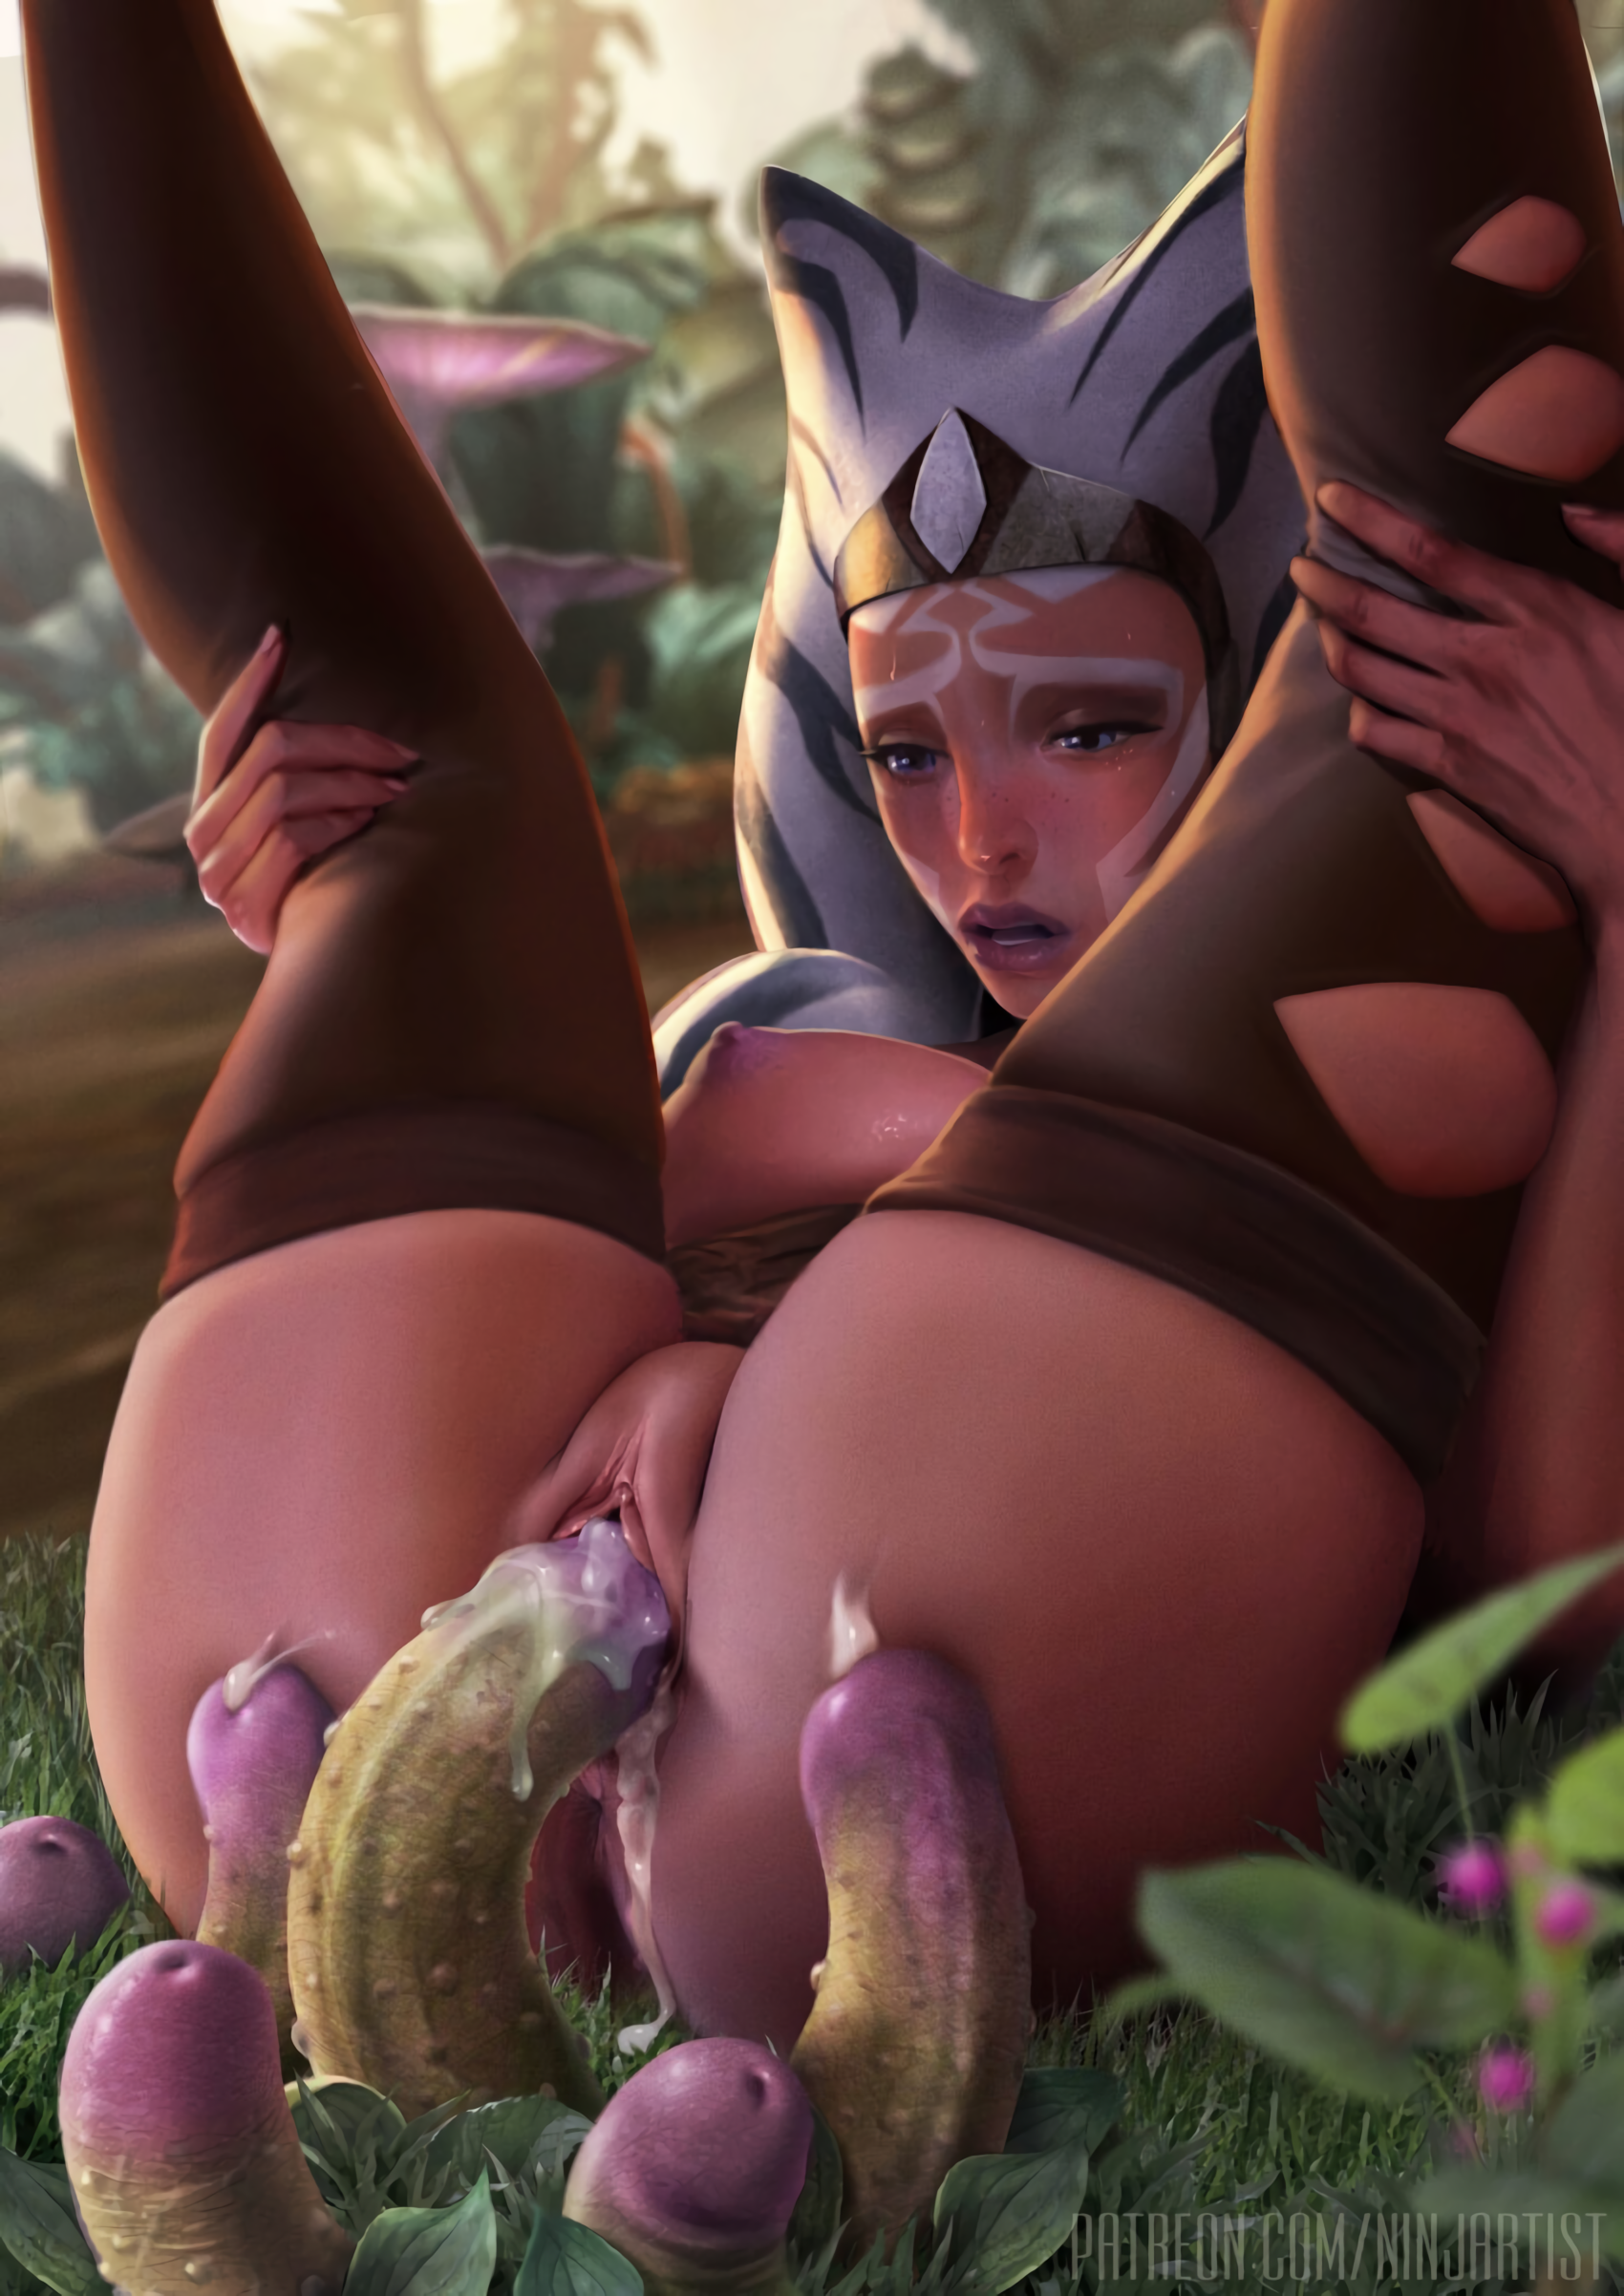 ninjartist ahsoka tano star wars alien girl areolae breasts cum cum in pussy female legs up leg grab nature nipples open mouth penetration penis plant pussy stockings sweat tentacle thighhighs vaginal penetration wet